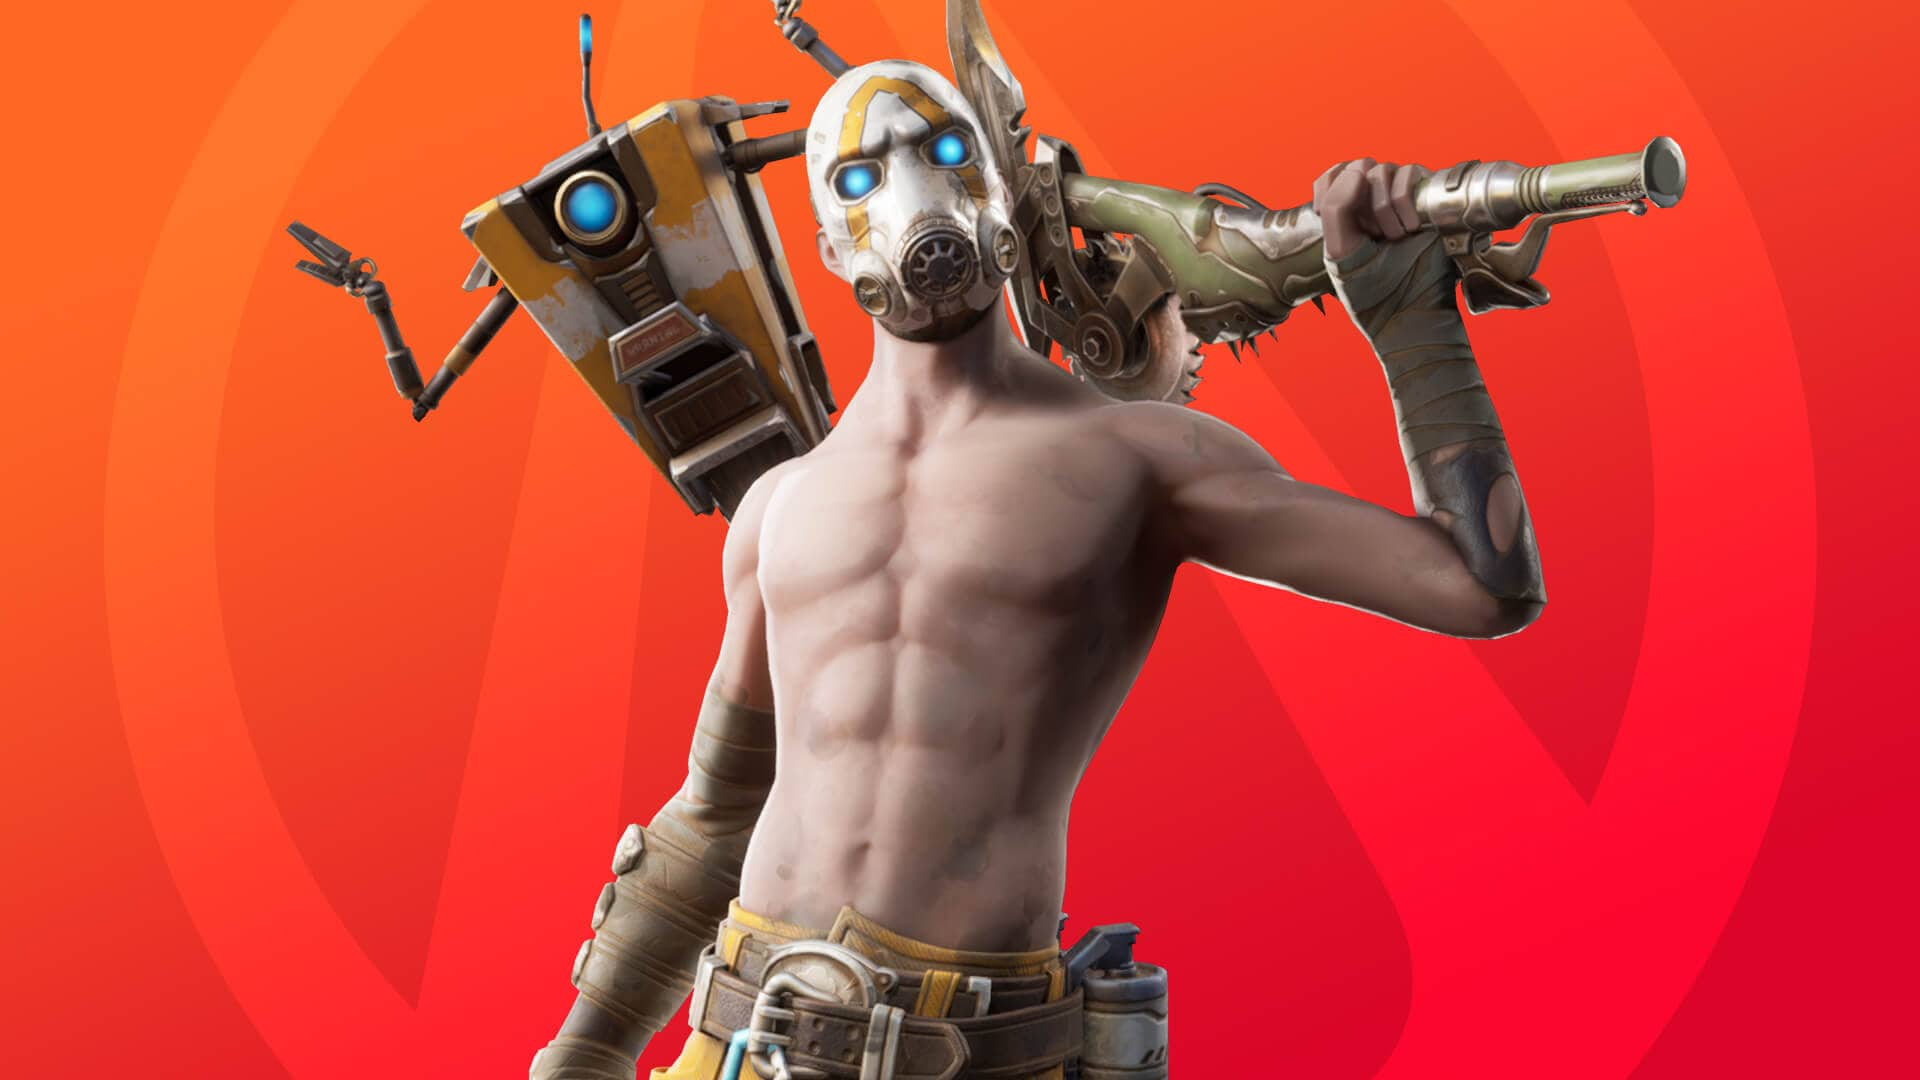 How To Get Free Axes And Outfits On Fortnite How To Claim Fortnite S Sweet Psycho Set For Free